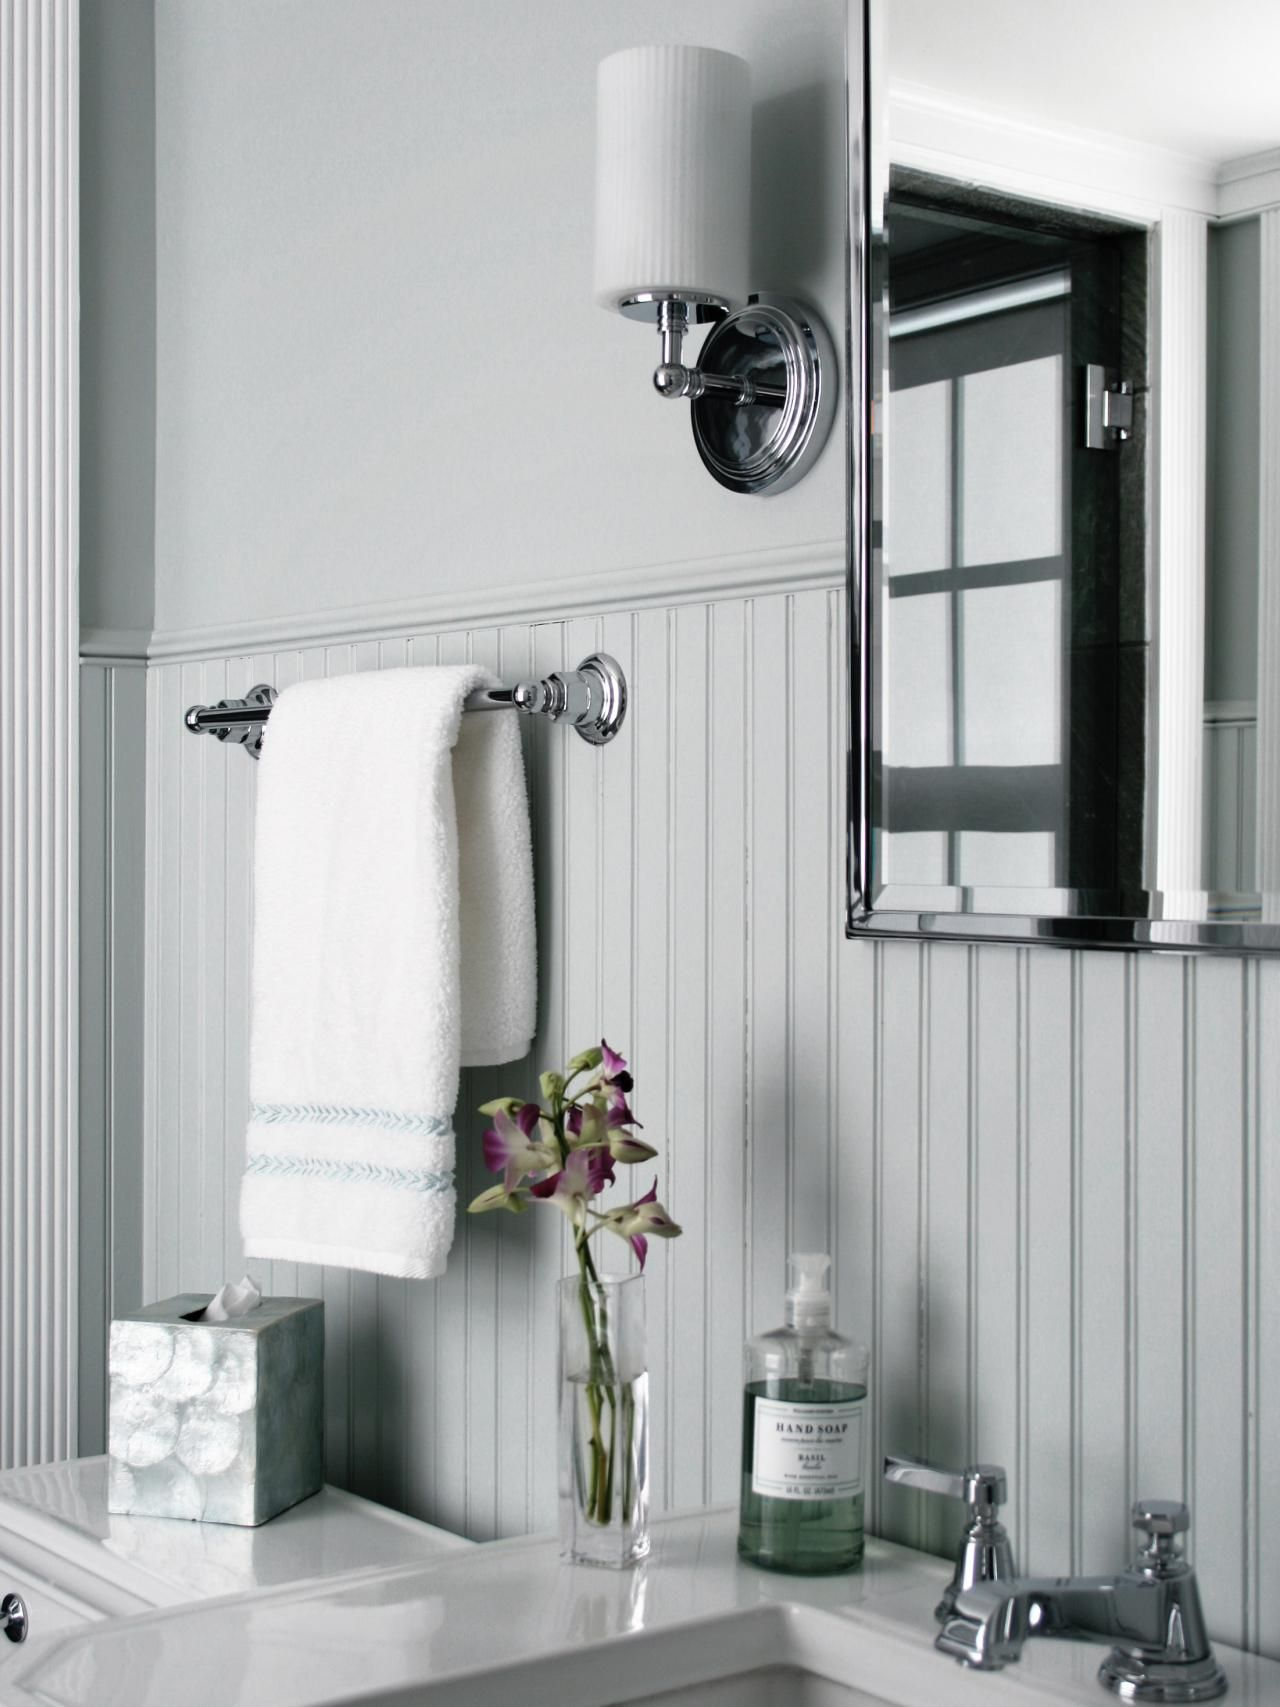 Picture Gallery Website How to Cover Dated Bathroom Tile with Wainscoting